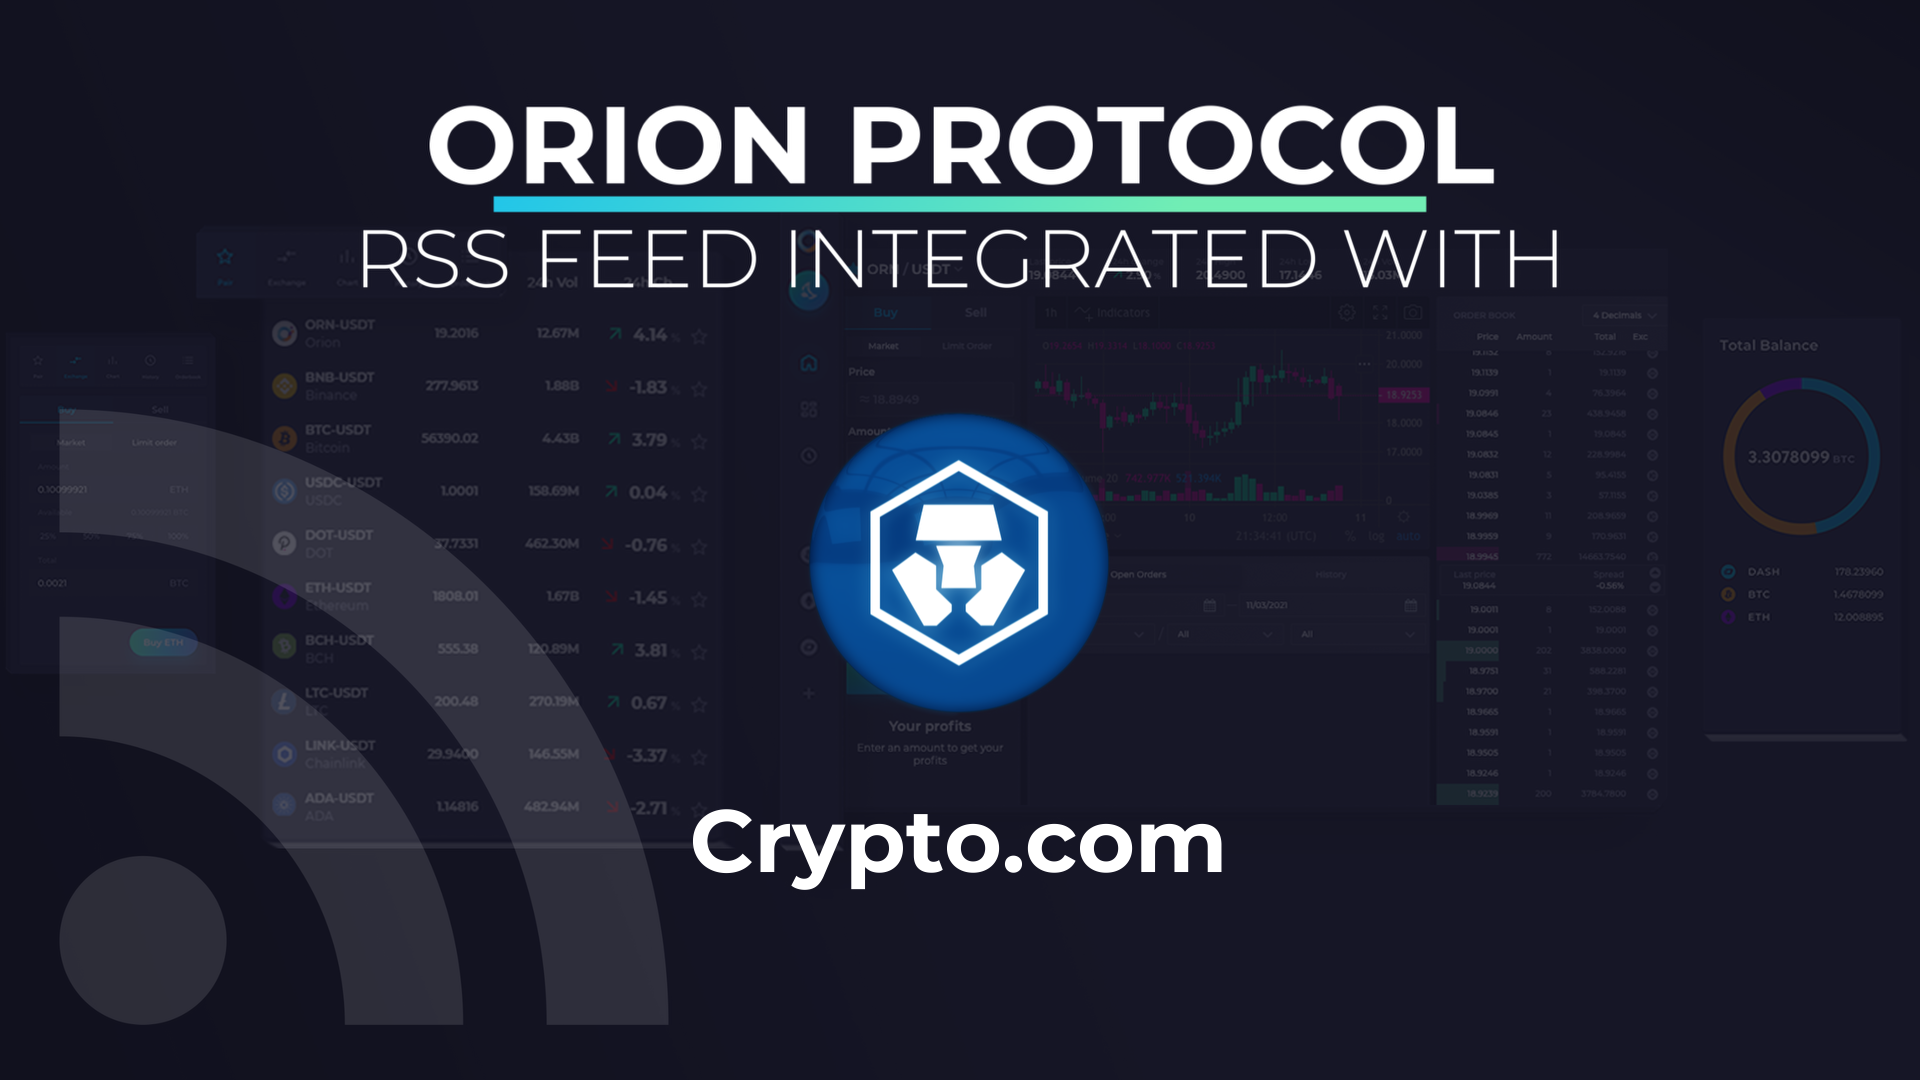 Orion Protocol's RSS feed integrated with Crypto.com